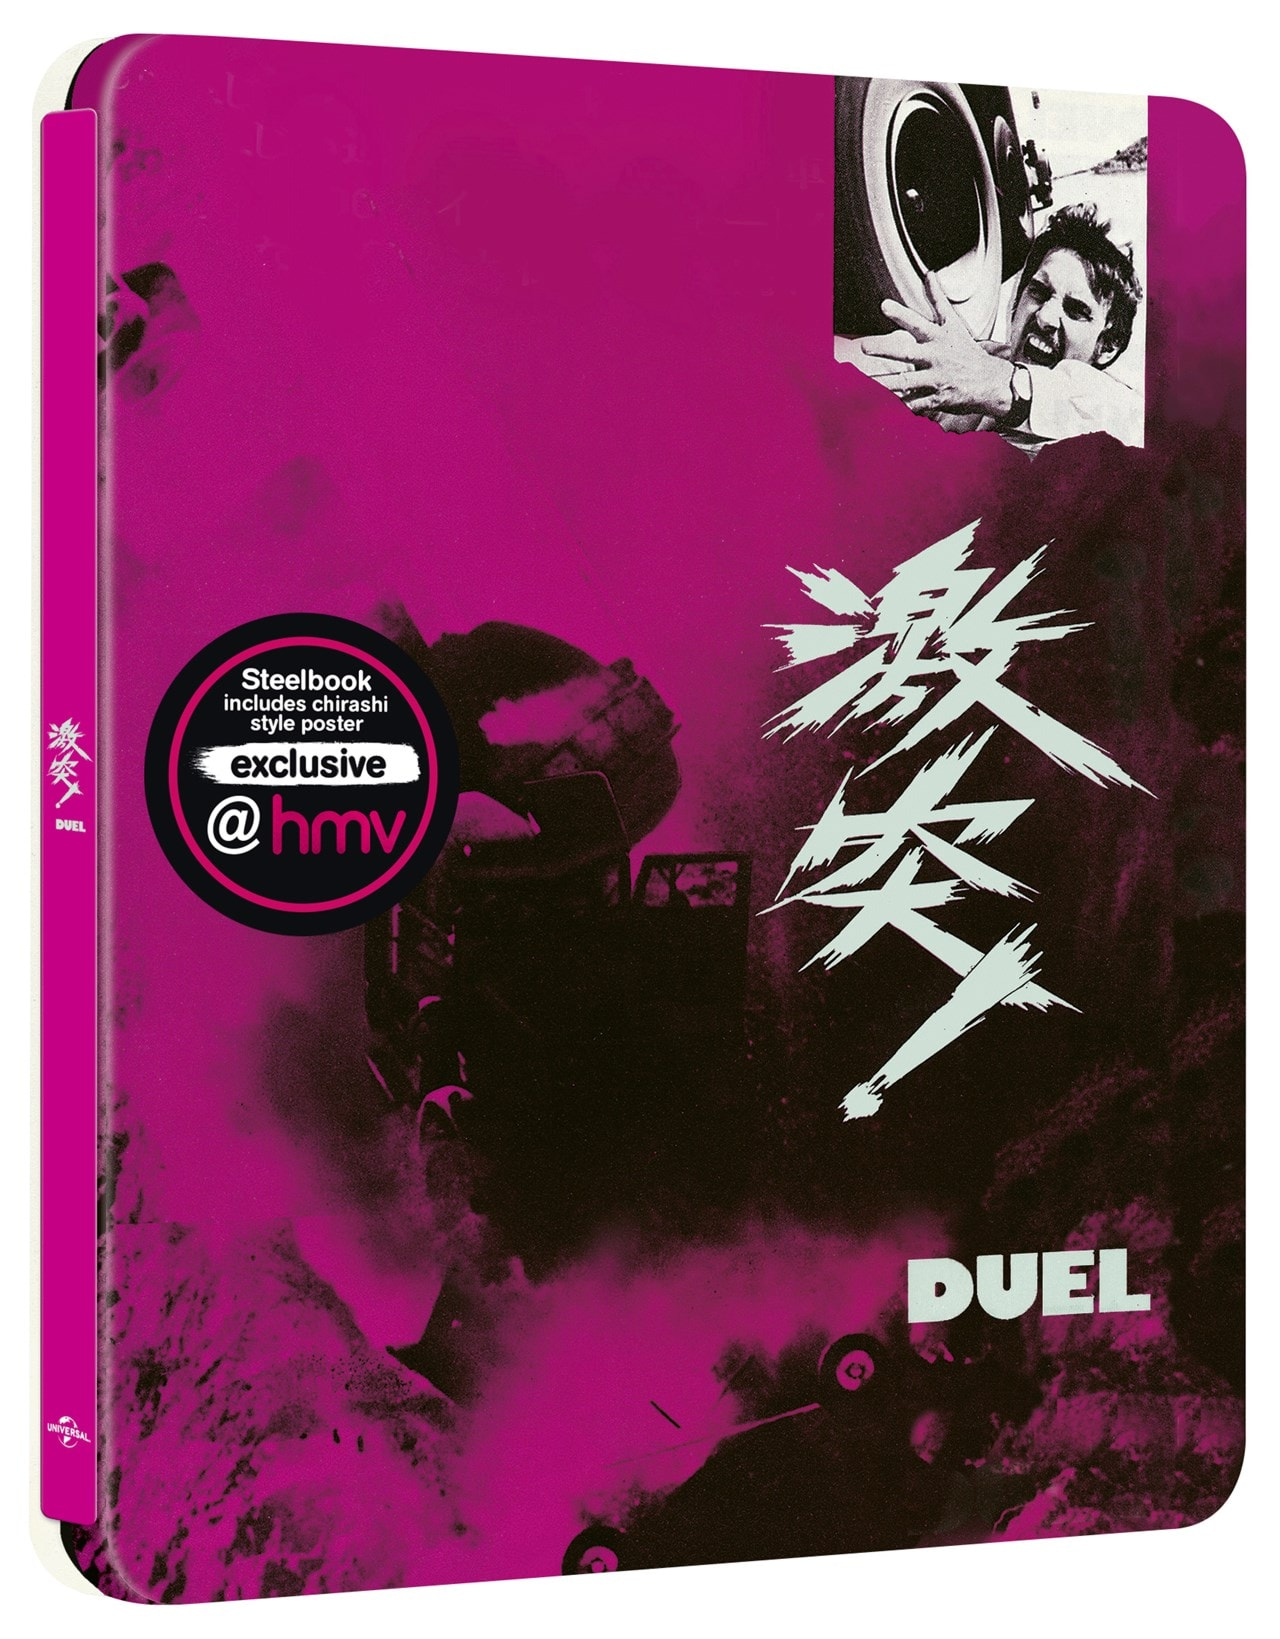 Duel (hmv Exclusive) - Japanese Artwork Series #2 Limited Edition Steelbook - 1